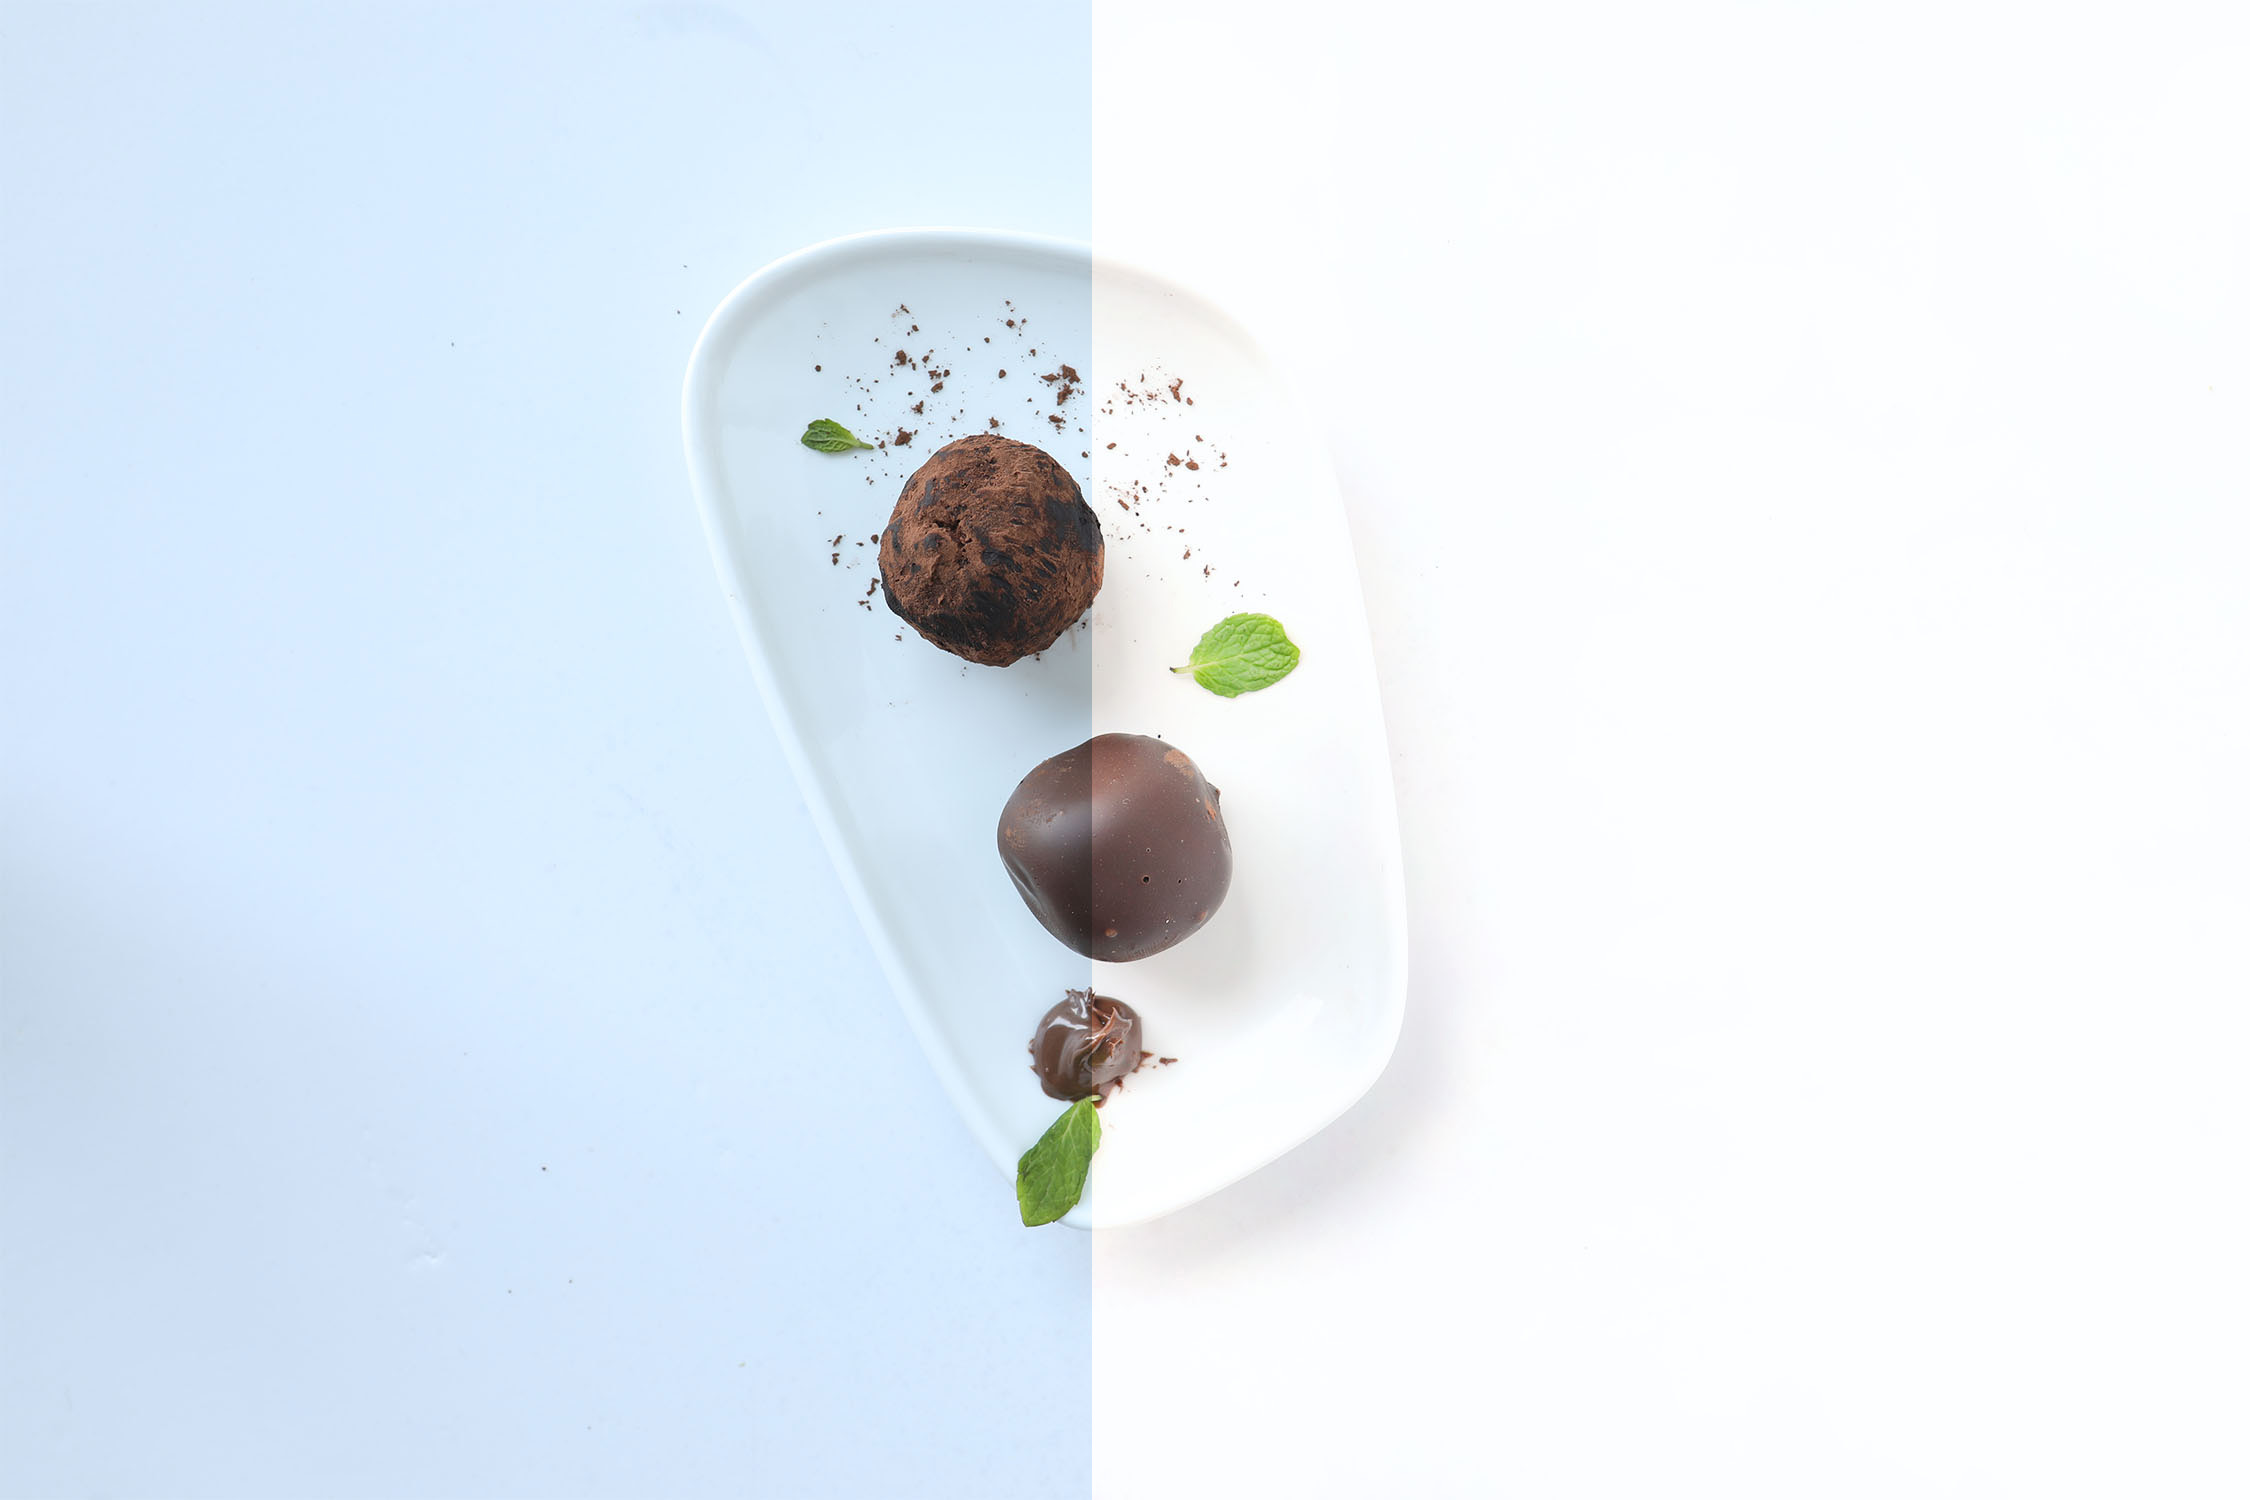 chococlate truffles_before_after_food_photography_whites_whiter.jpg